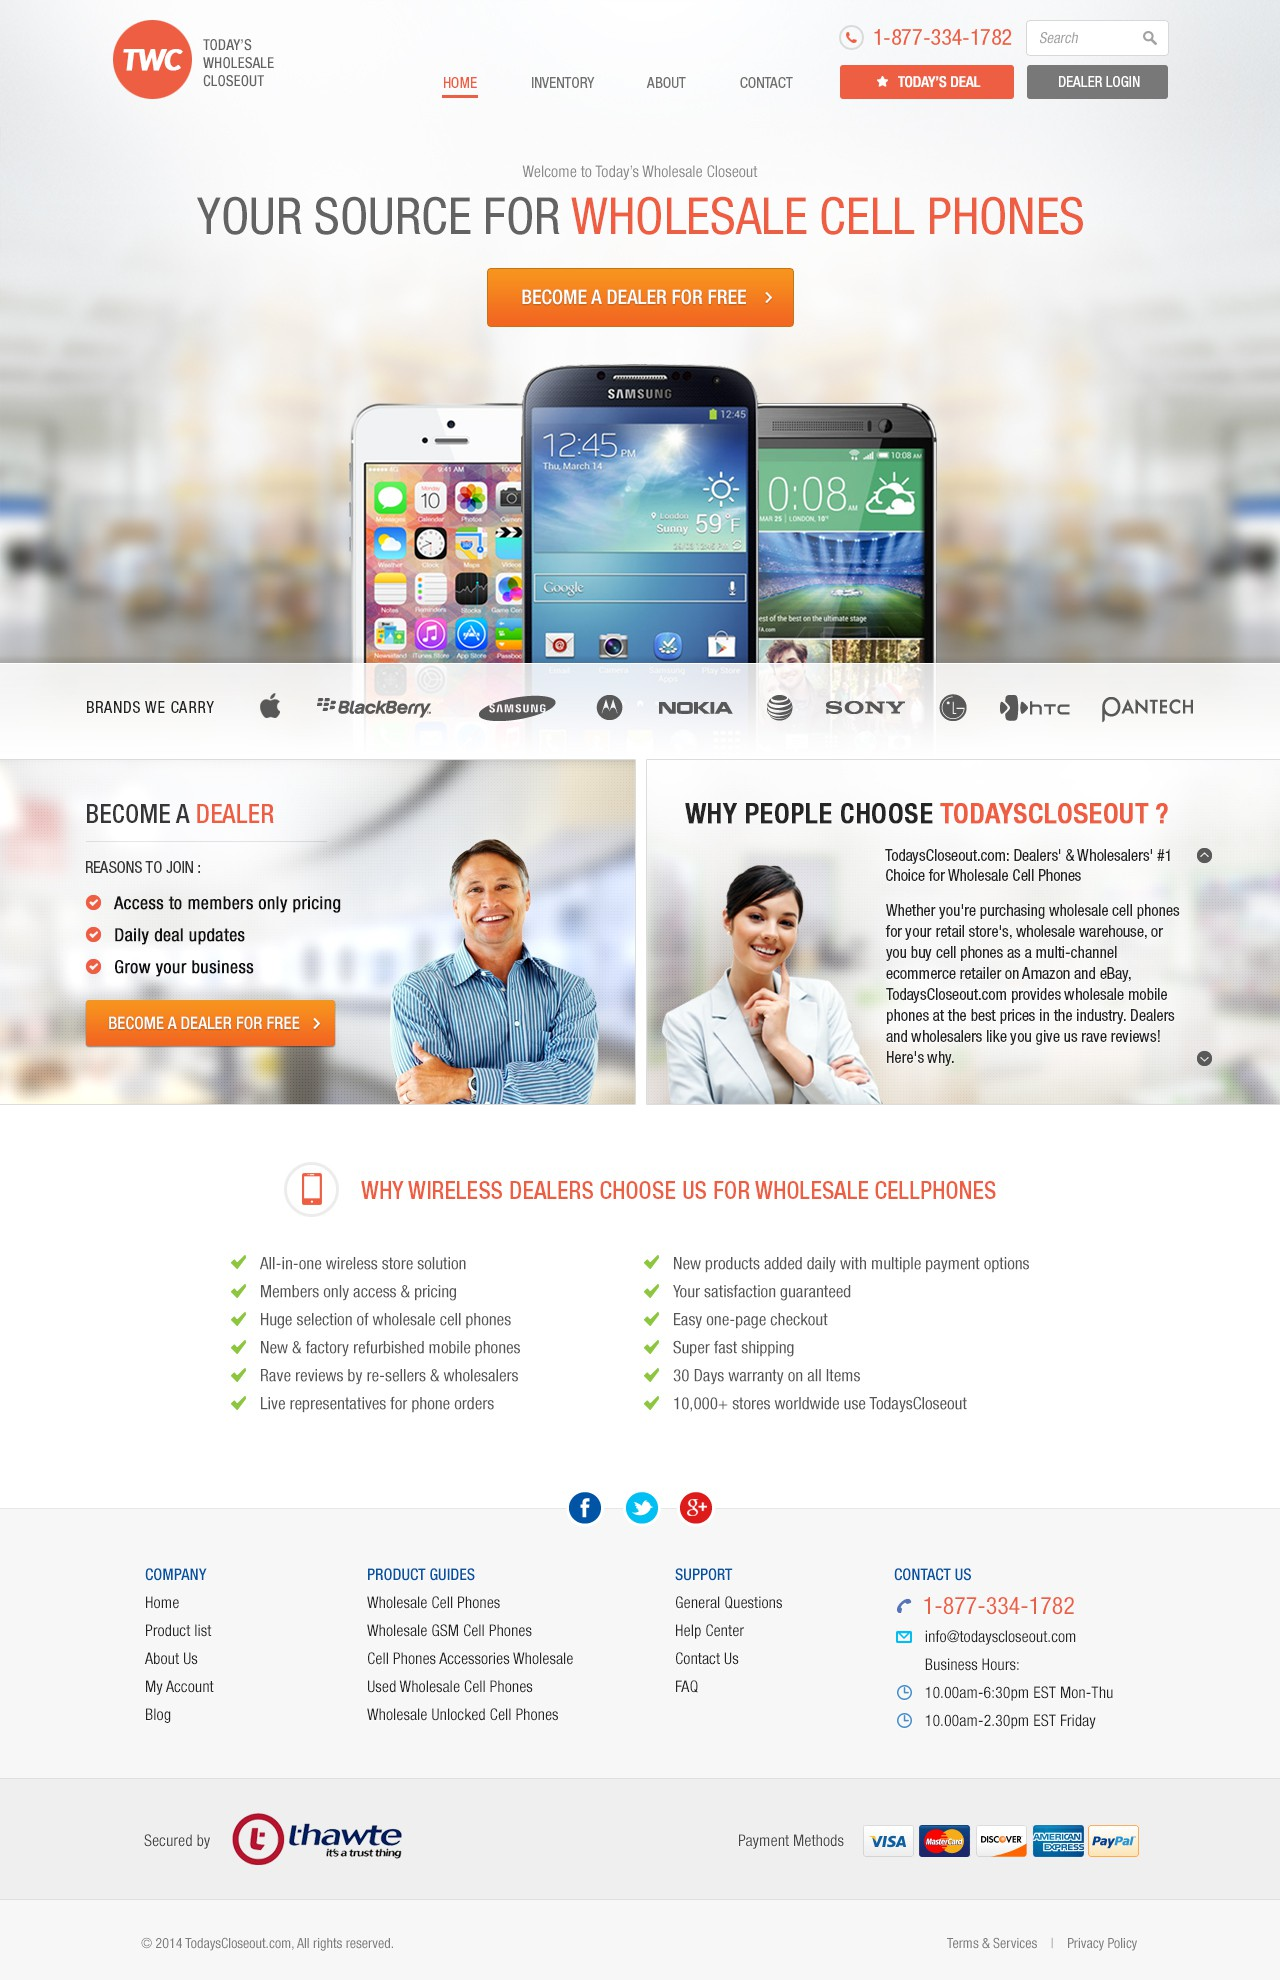 Re-imagine our existing B2B e-commerce site with a fresh modern attractive design that converts